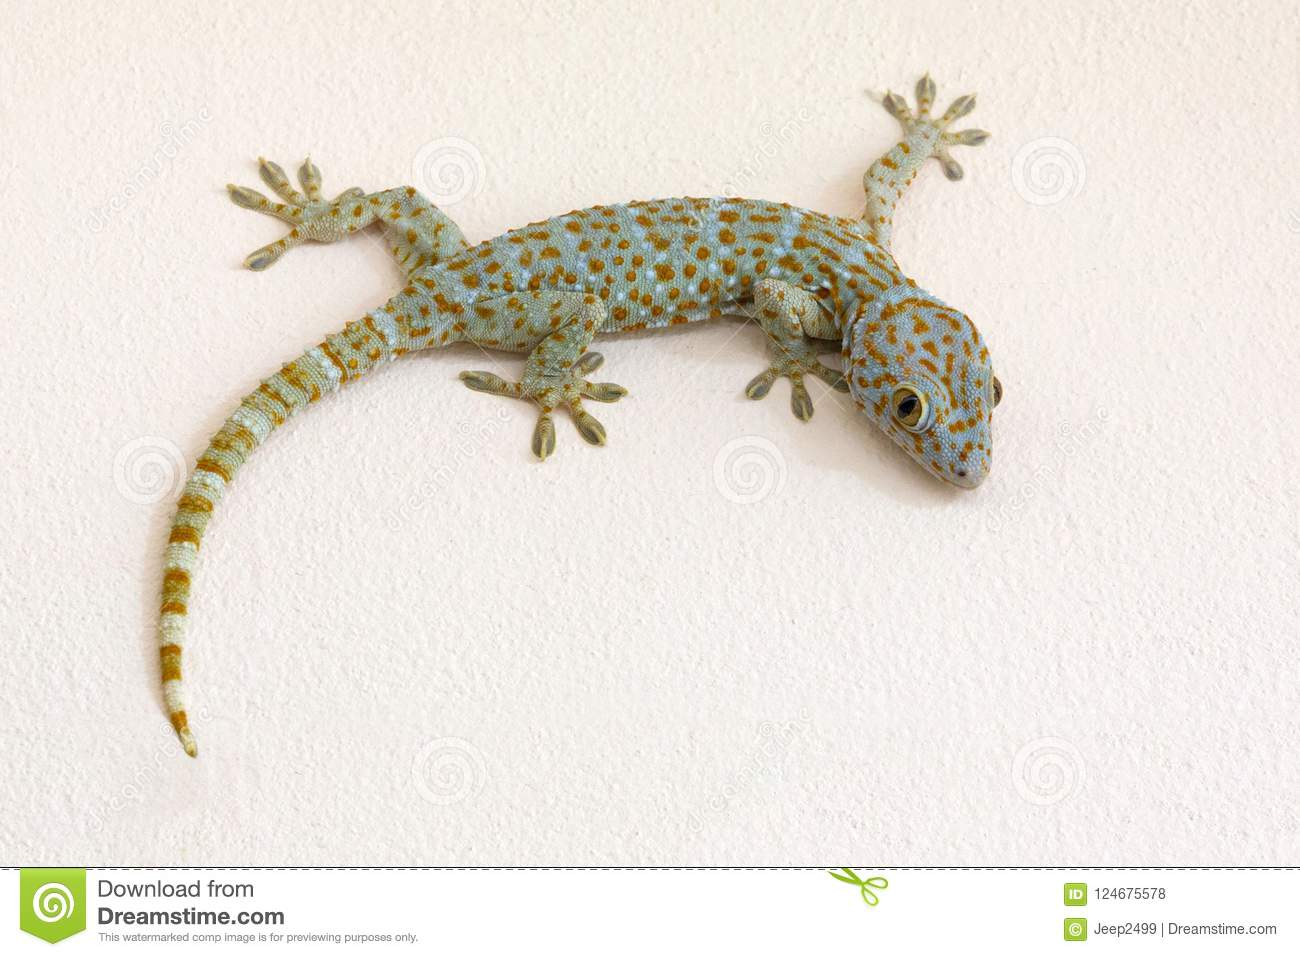 Colorful patterns of gecko on plaster wall.